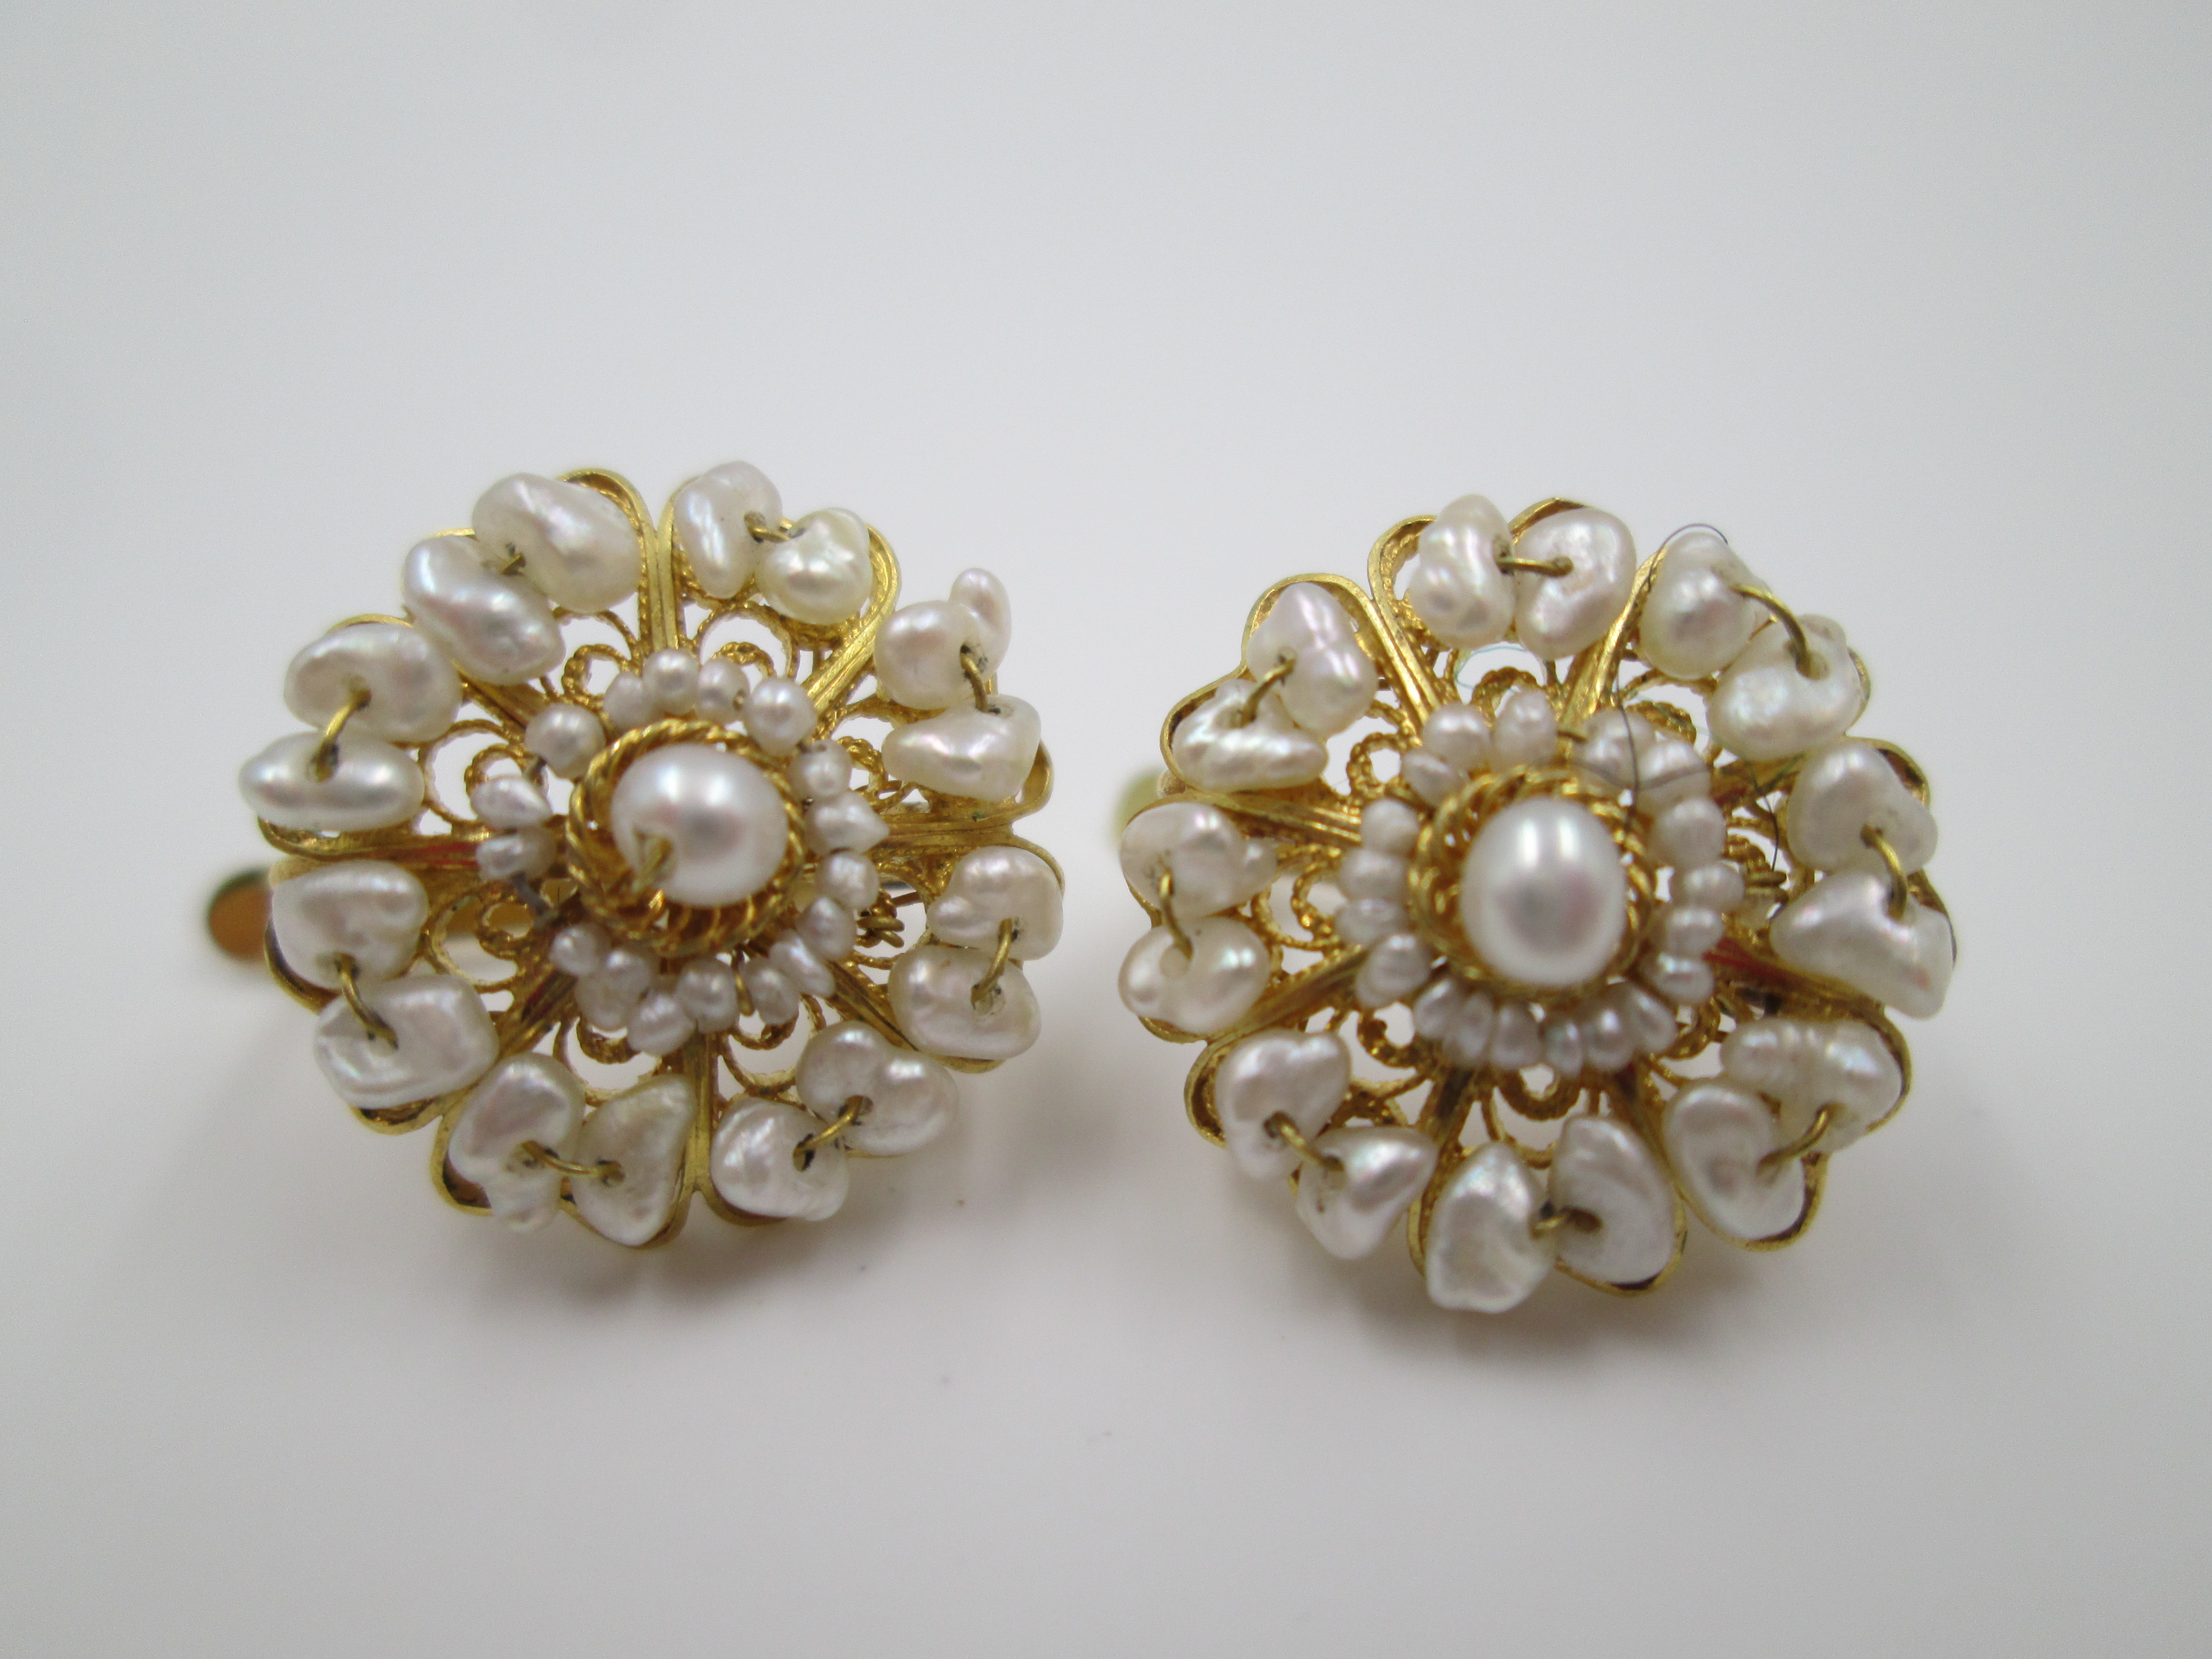 womens earrings 18 karat yellow gold and seed pearls 1980